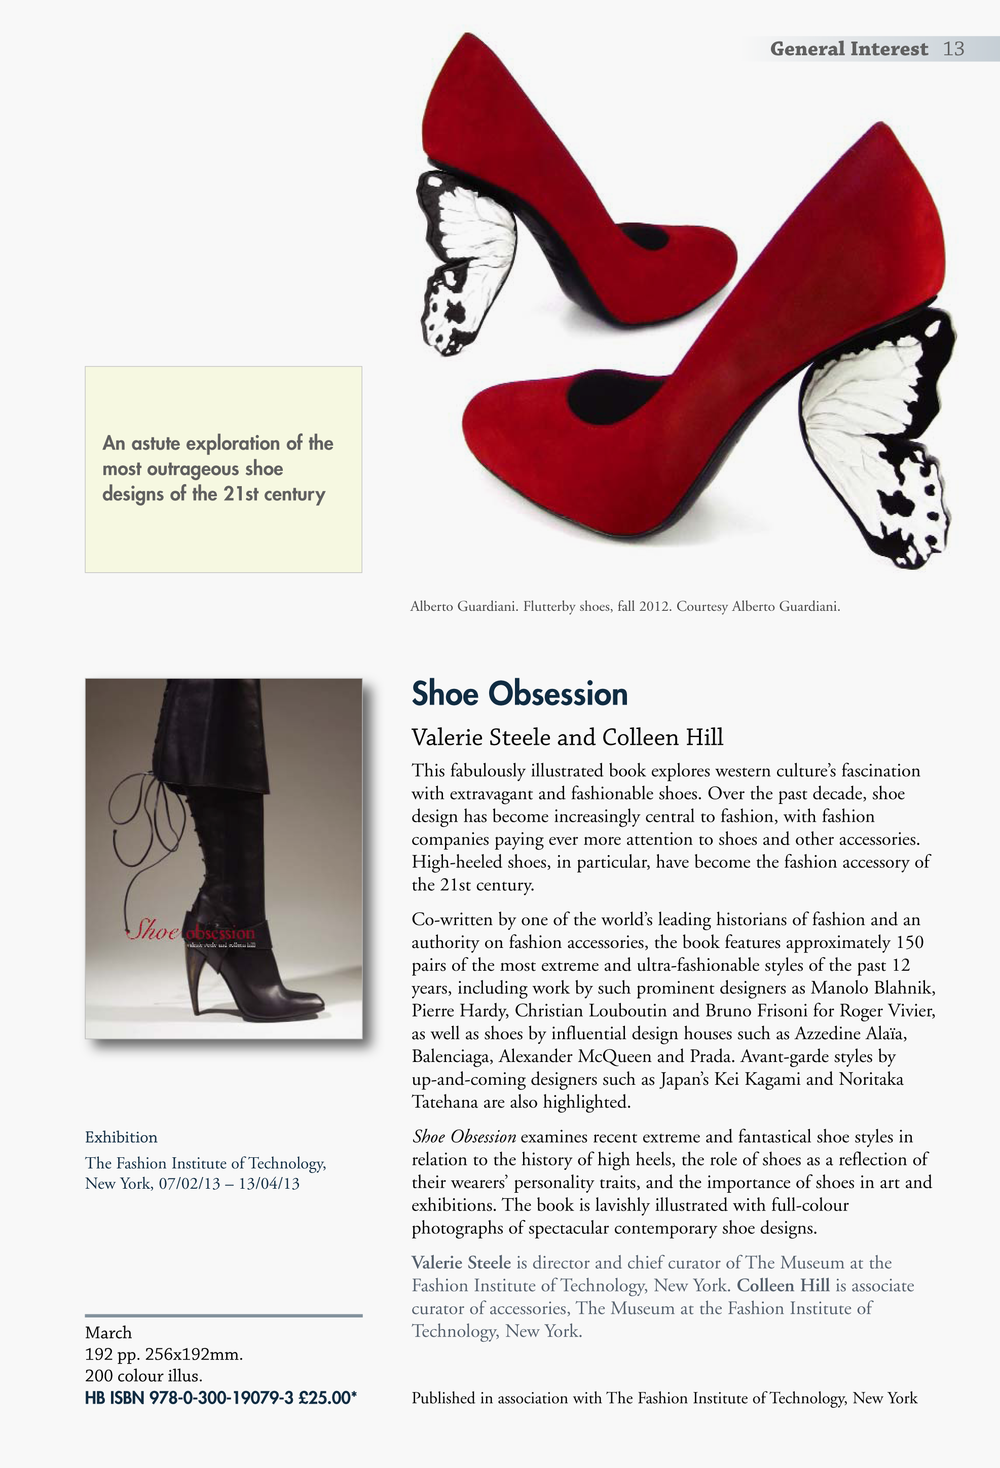 Shoe Obsession Exhibit FIT